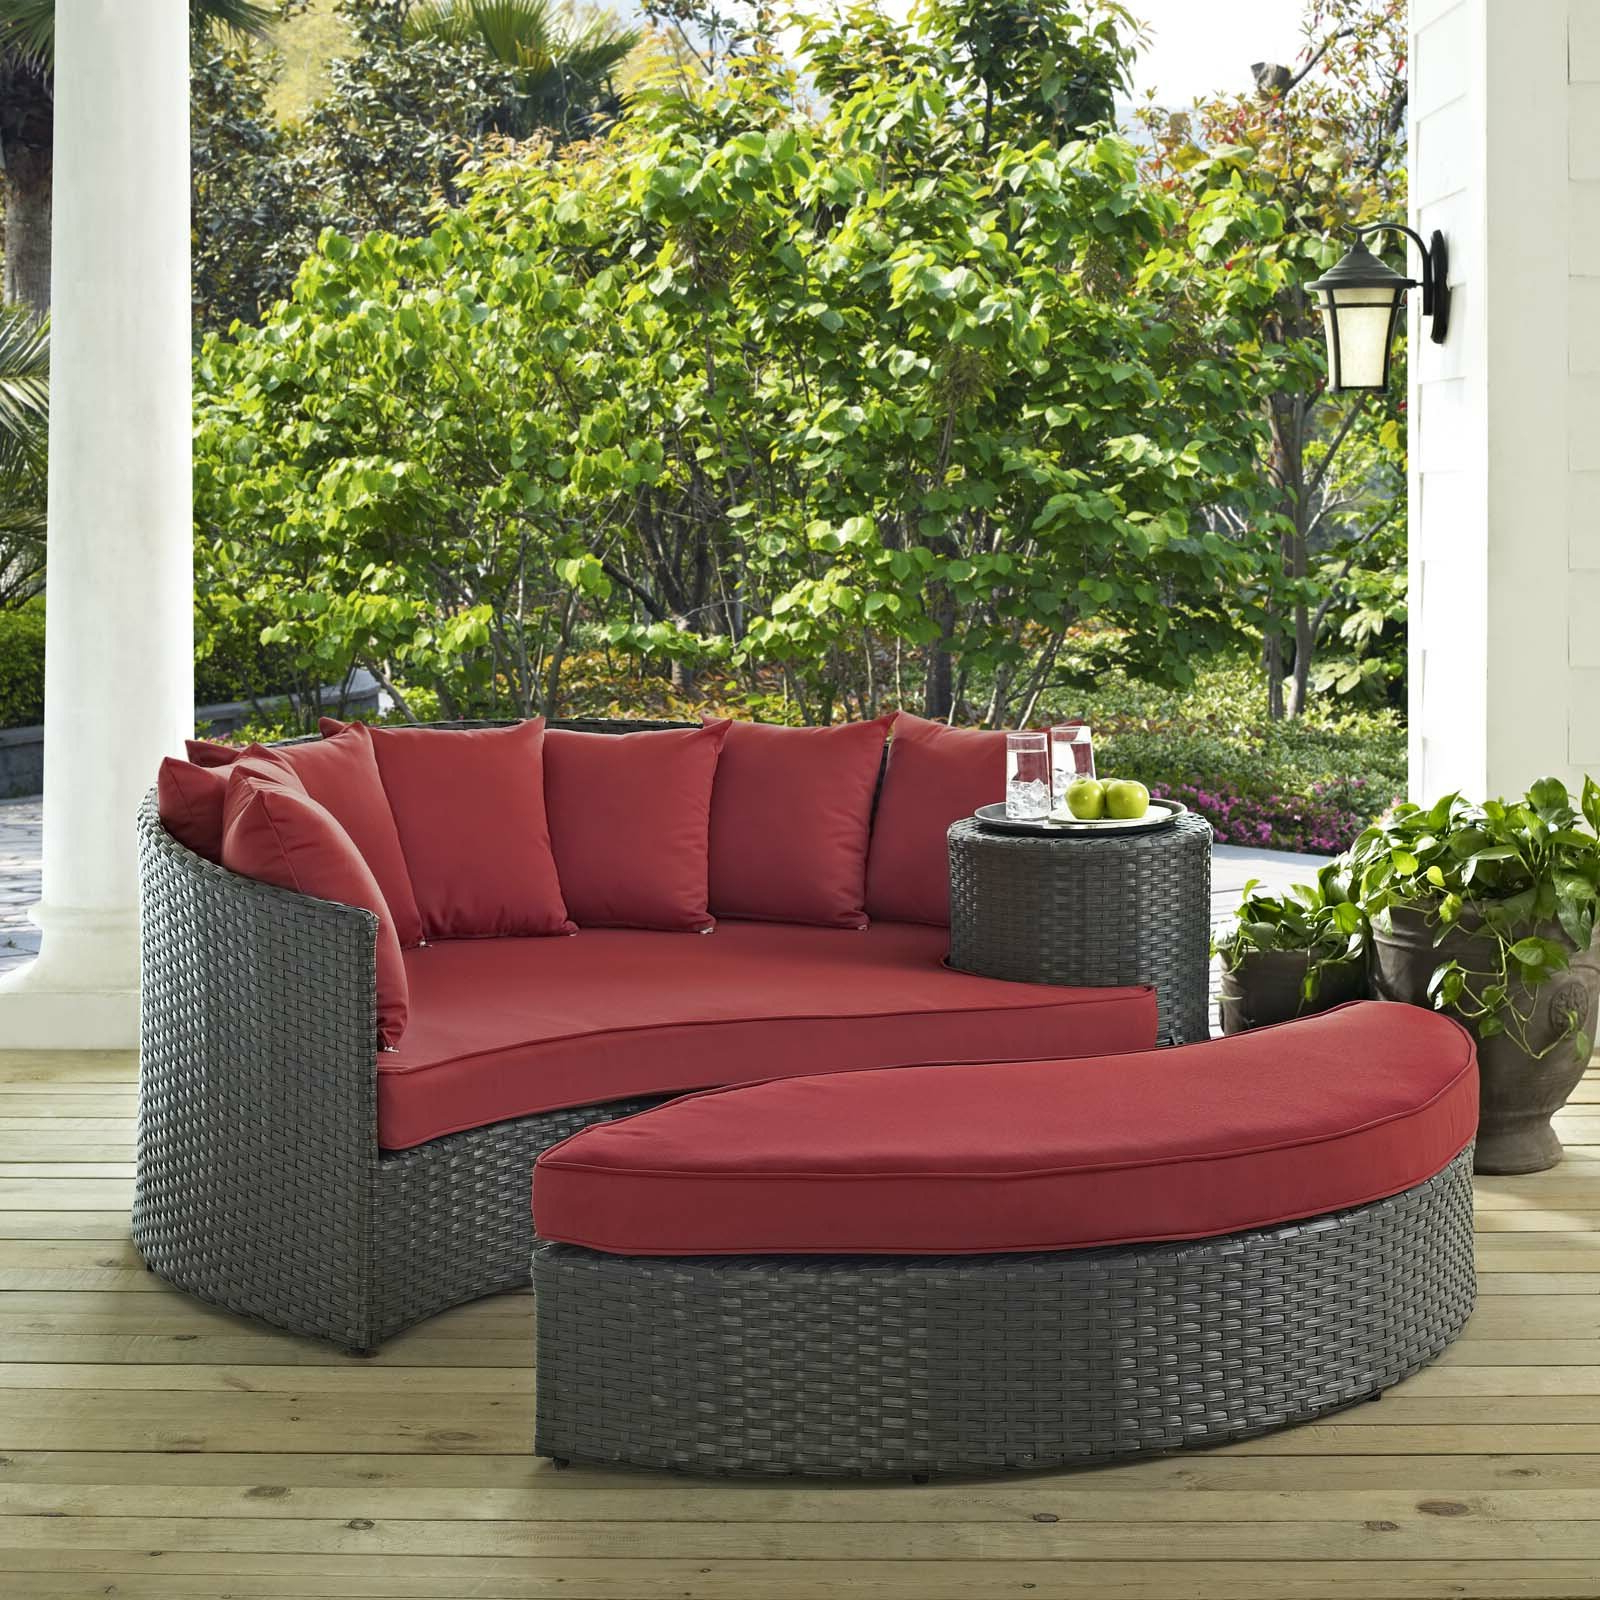 Tiana Patio Daybeds With Cushions Regarding 2019 Tripp Patio Daybed With Cushions (View 8 of 20)